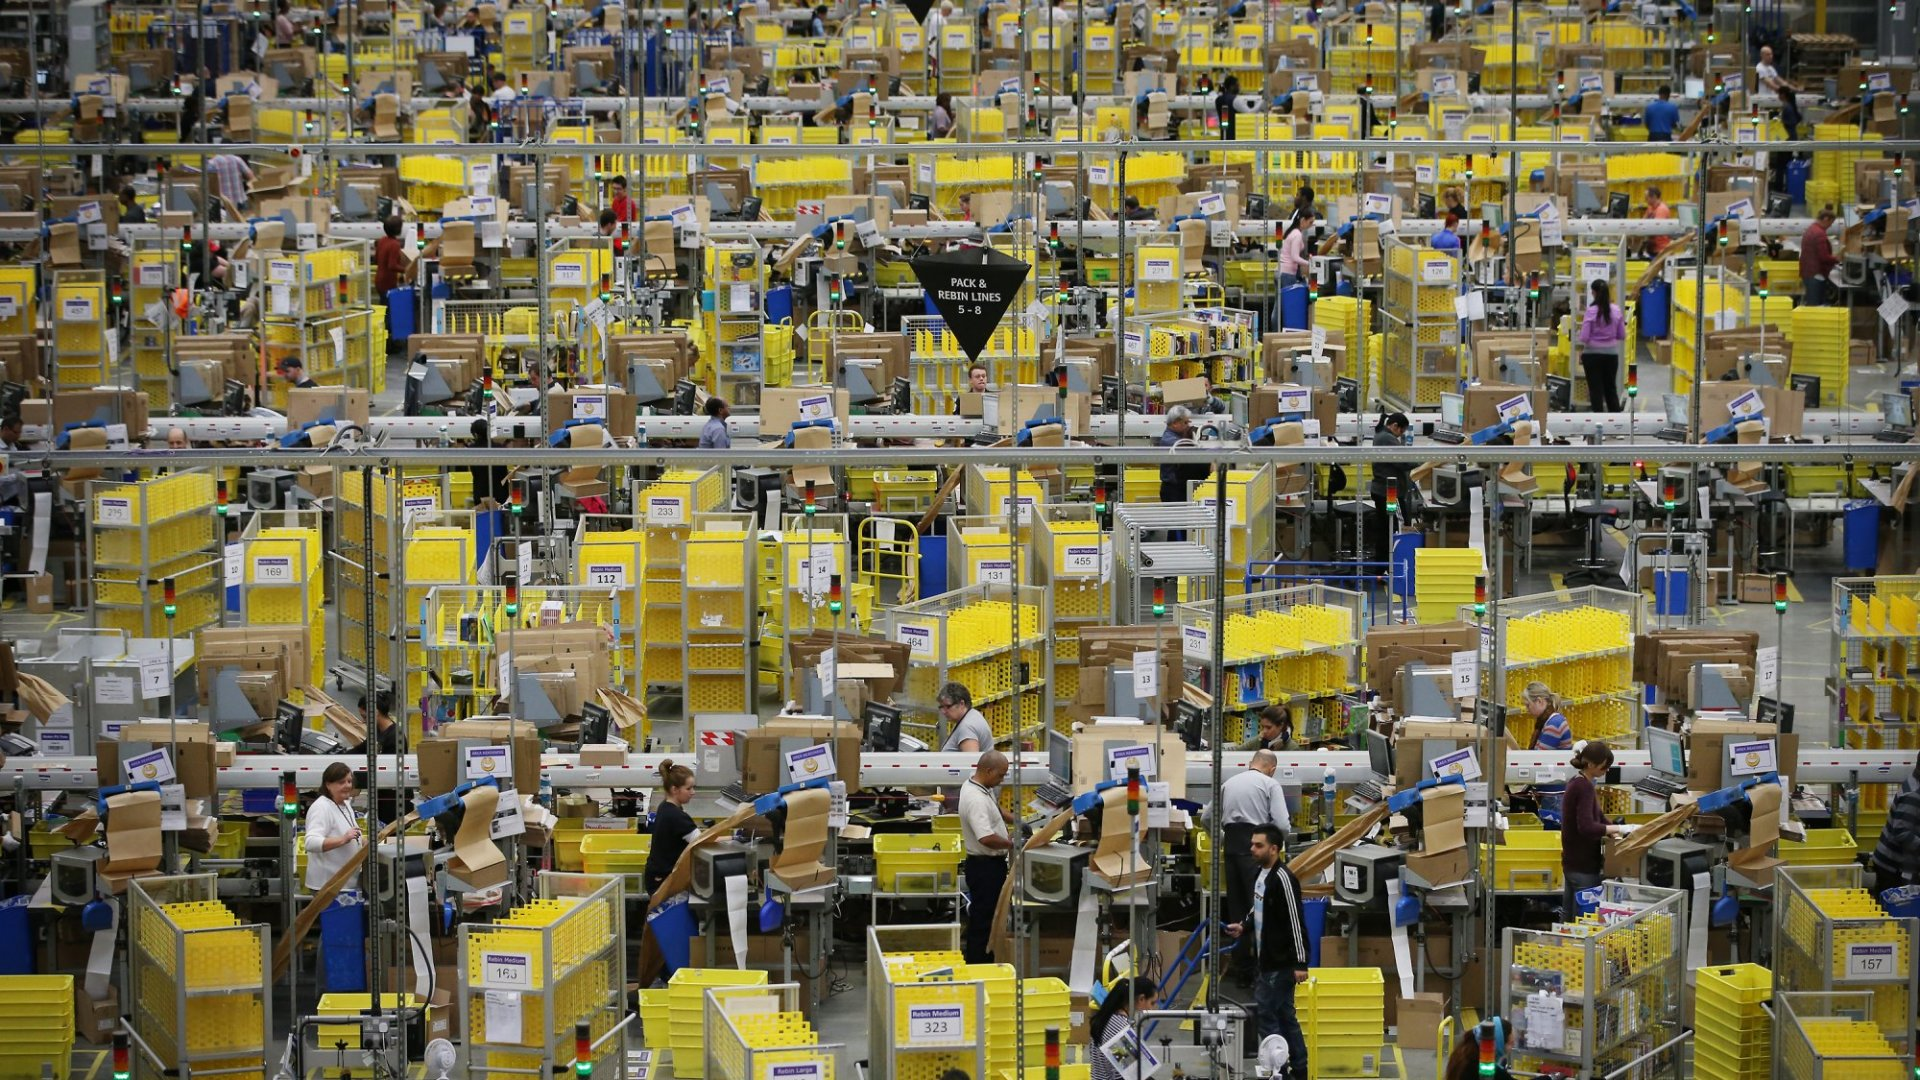 This Monumental Shift in Amazon's Strategy Could Affect Thousands of Mom-and-Pop Vendors